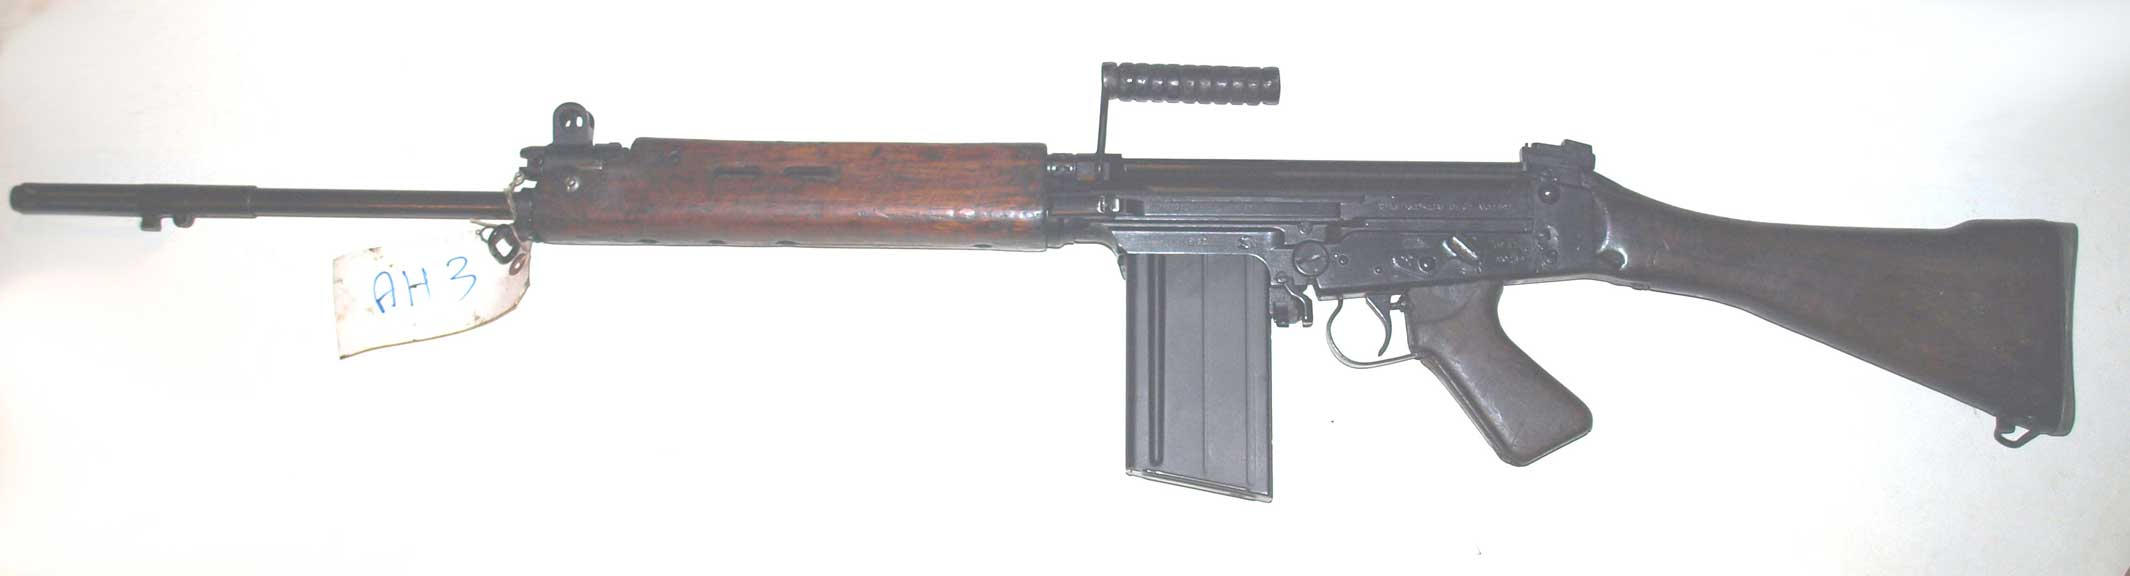 British L1A1 SLR (AH3) Price reduced from £975